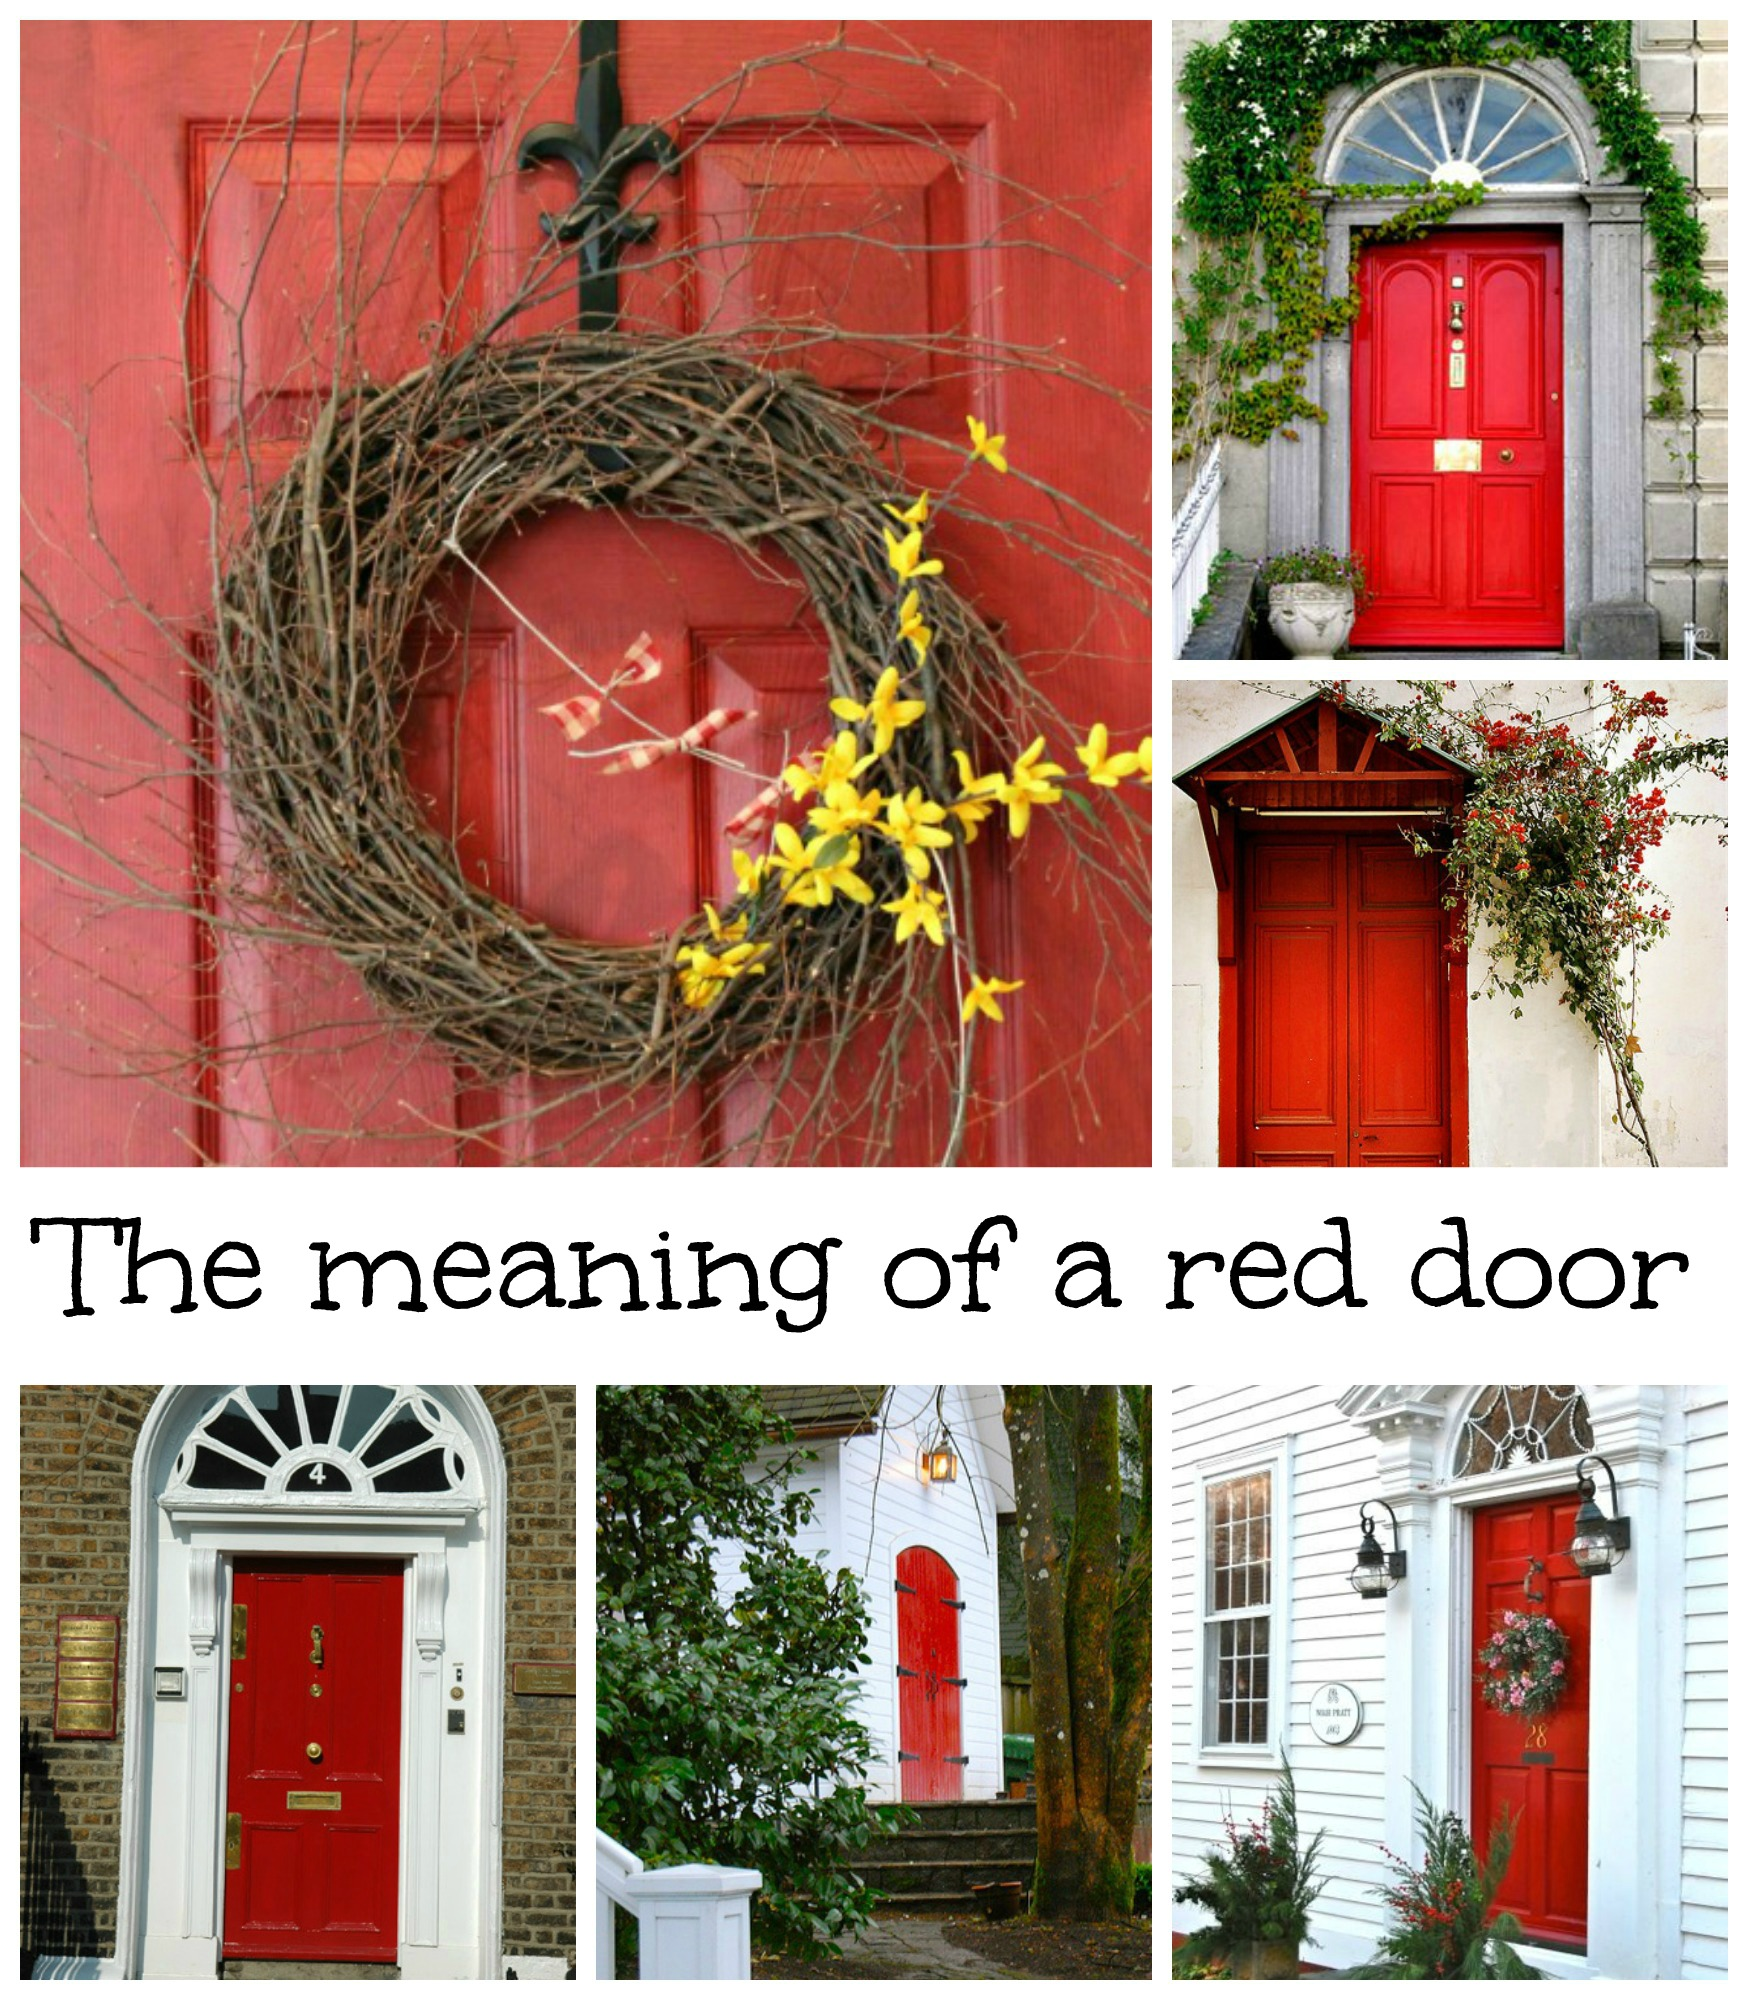 What Does Having A Red Door Mean?